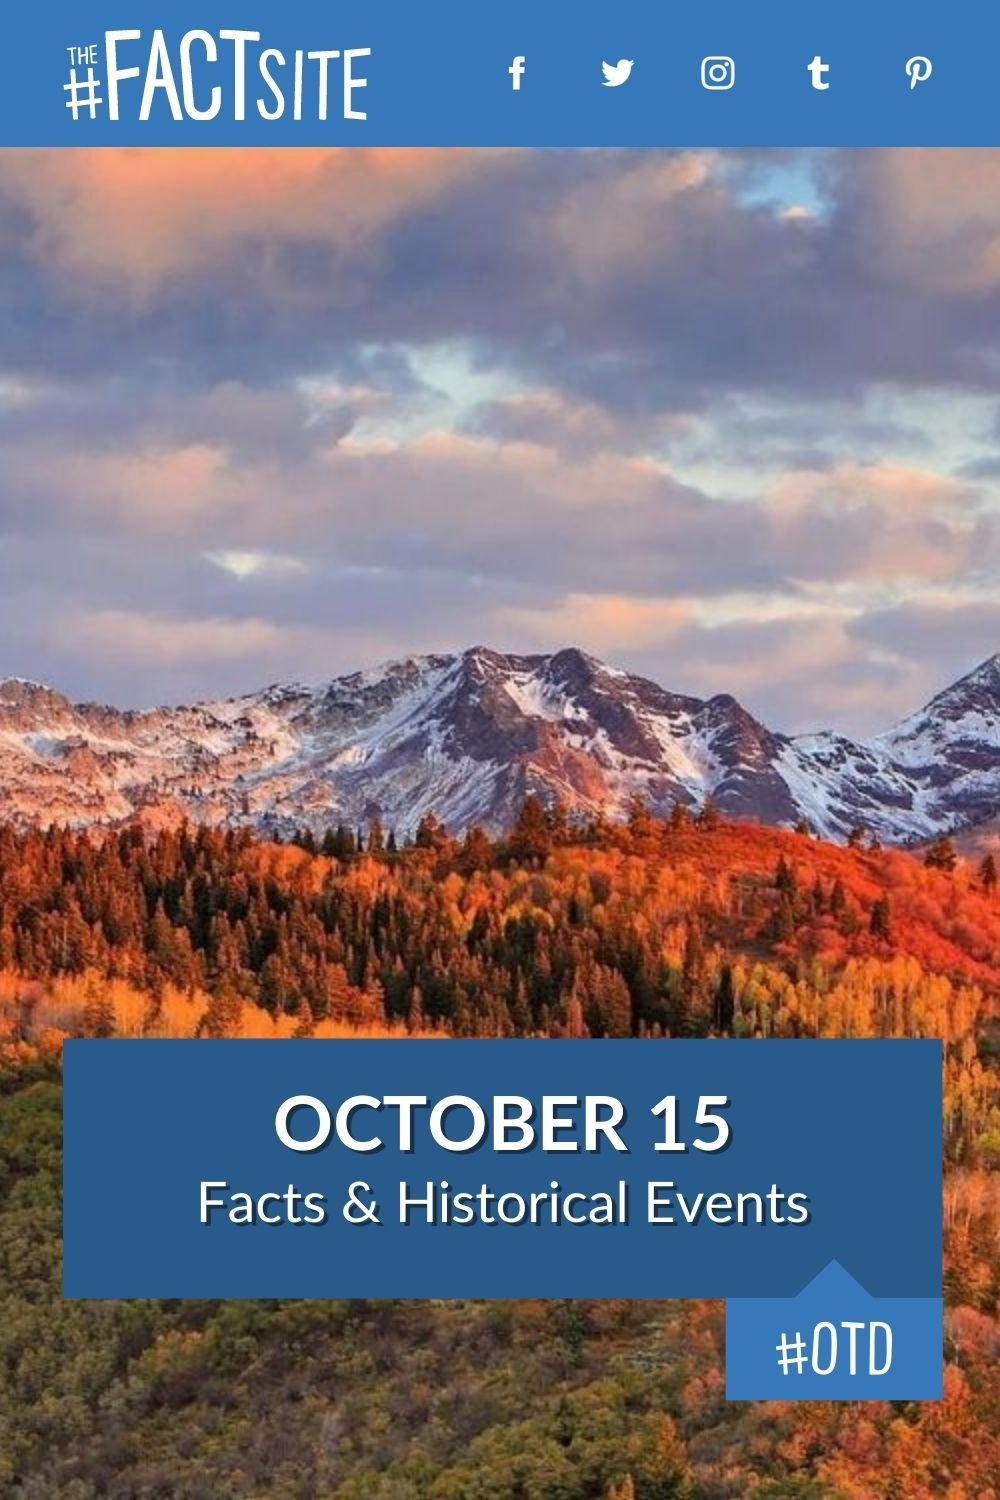 Facts & Historic Events That Happened on October 15